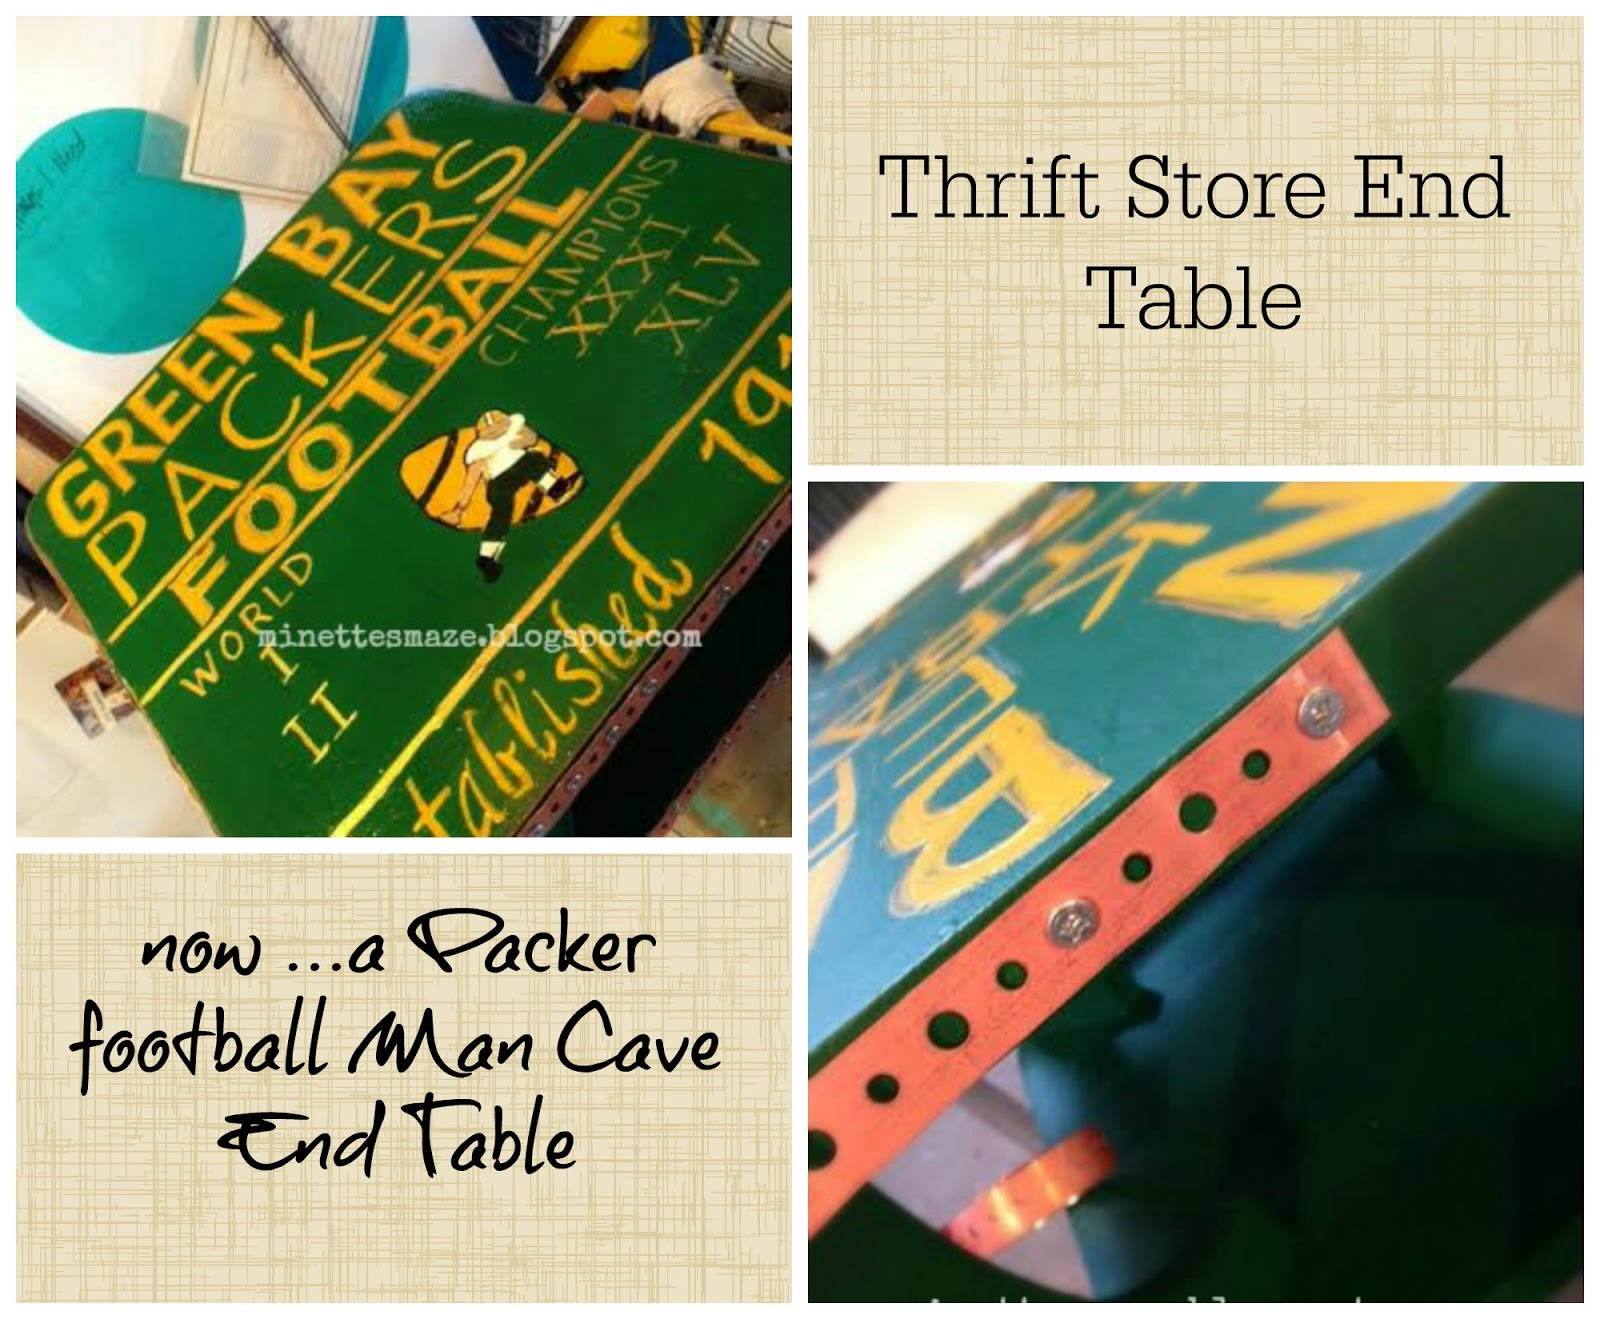 Man Cave Thrift Store : Minettesmaze thrift store end table football man cave